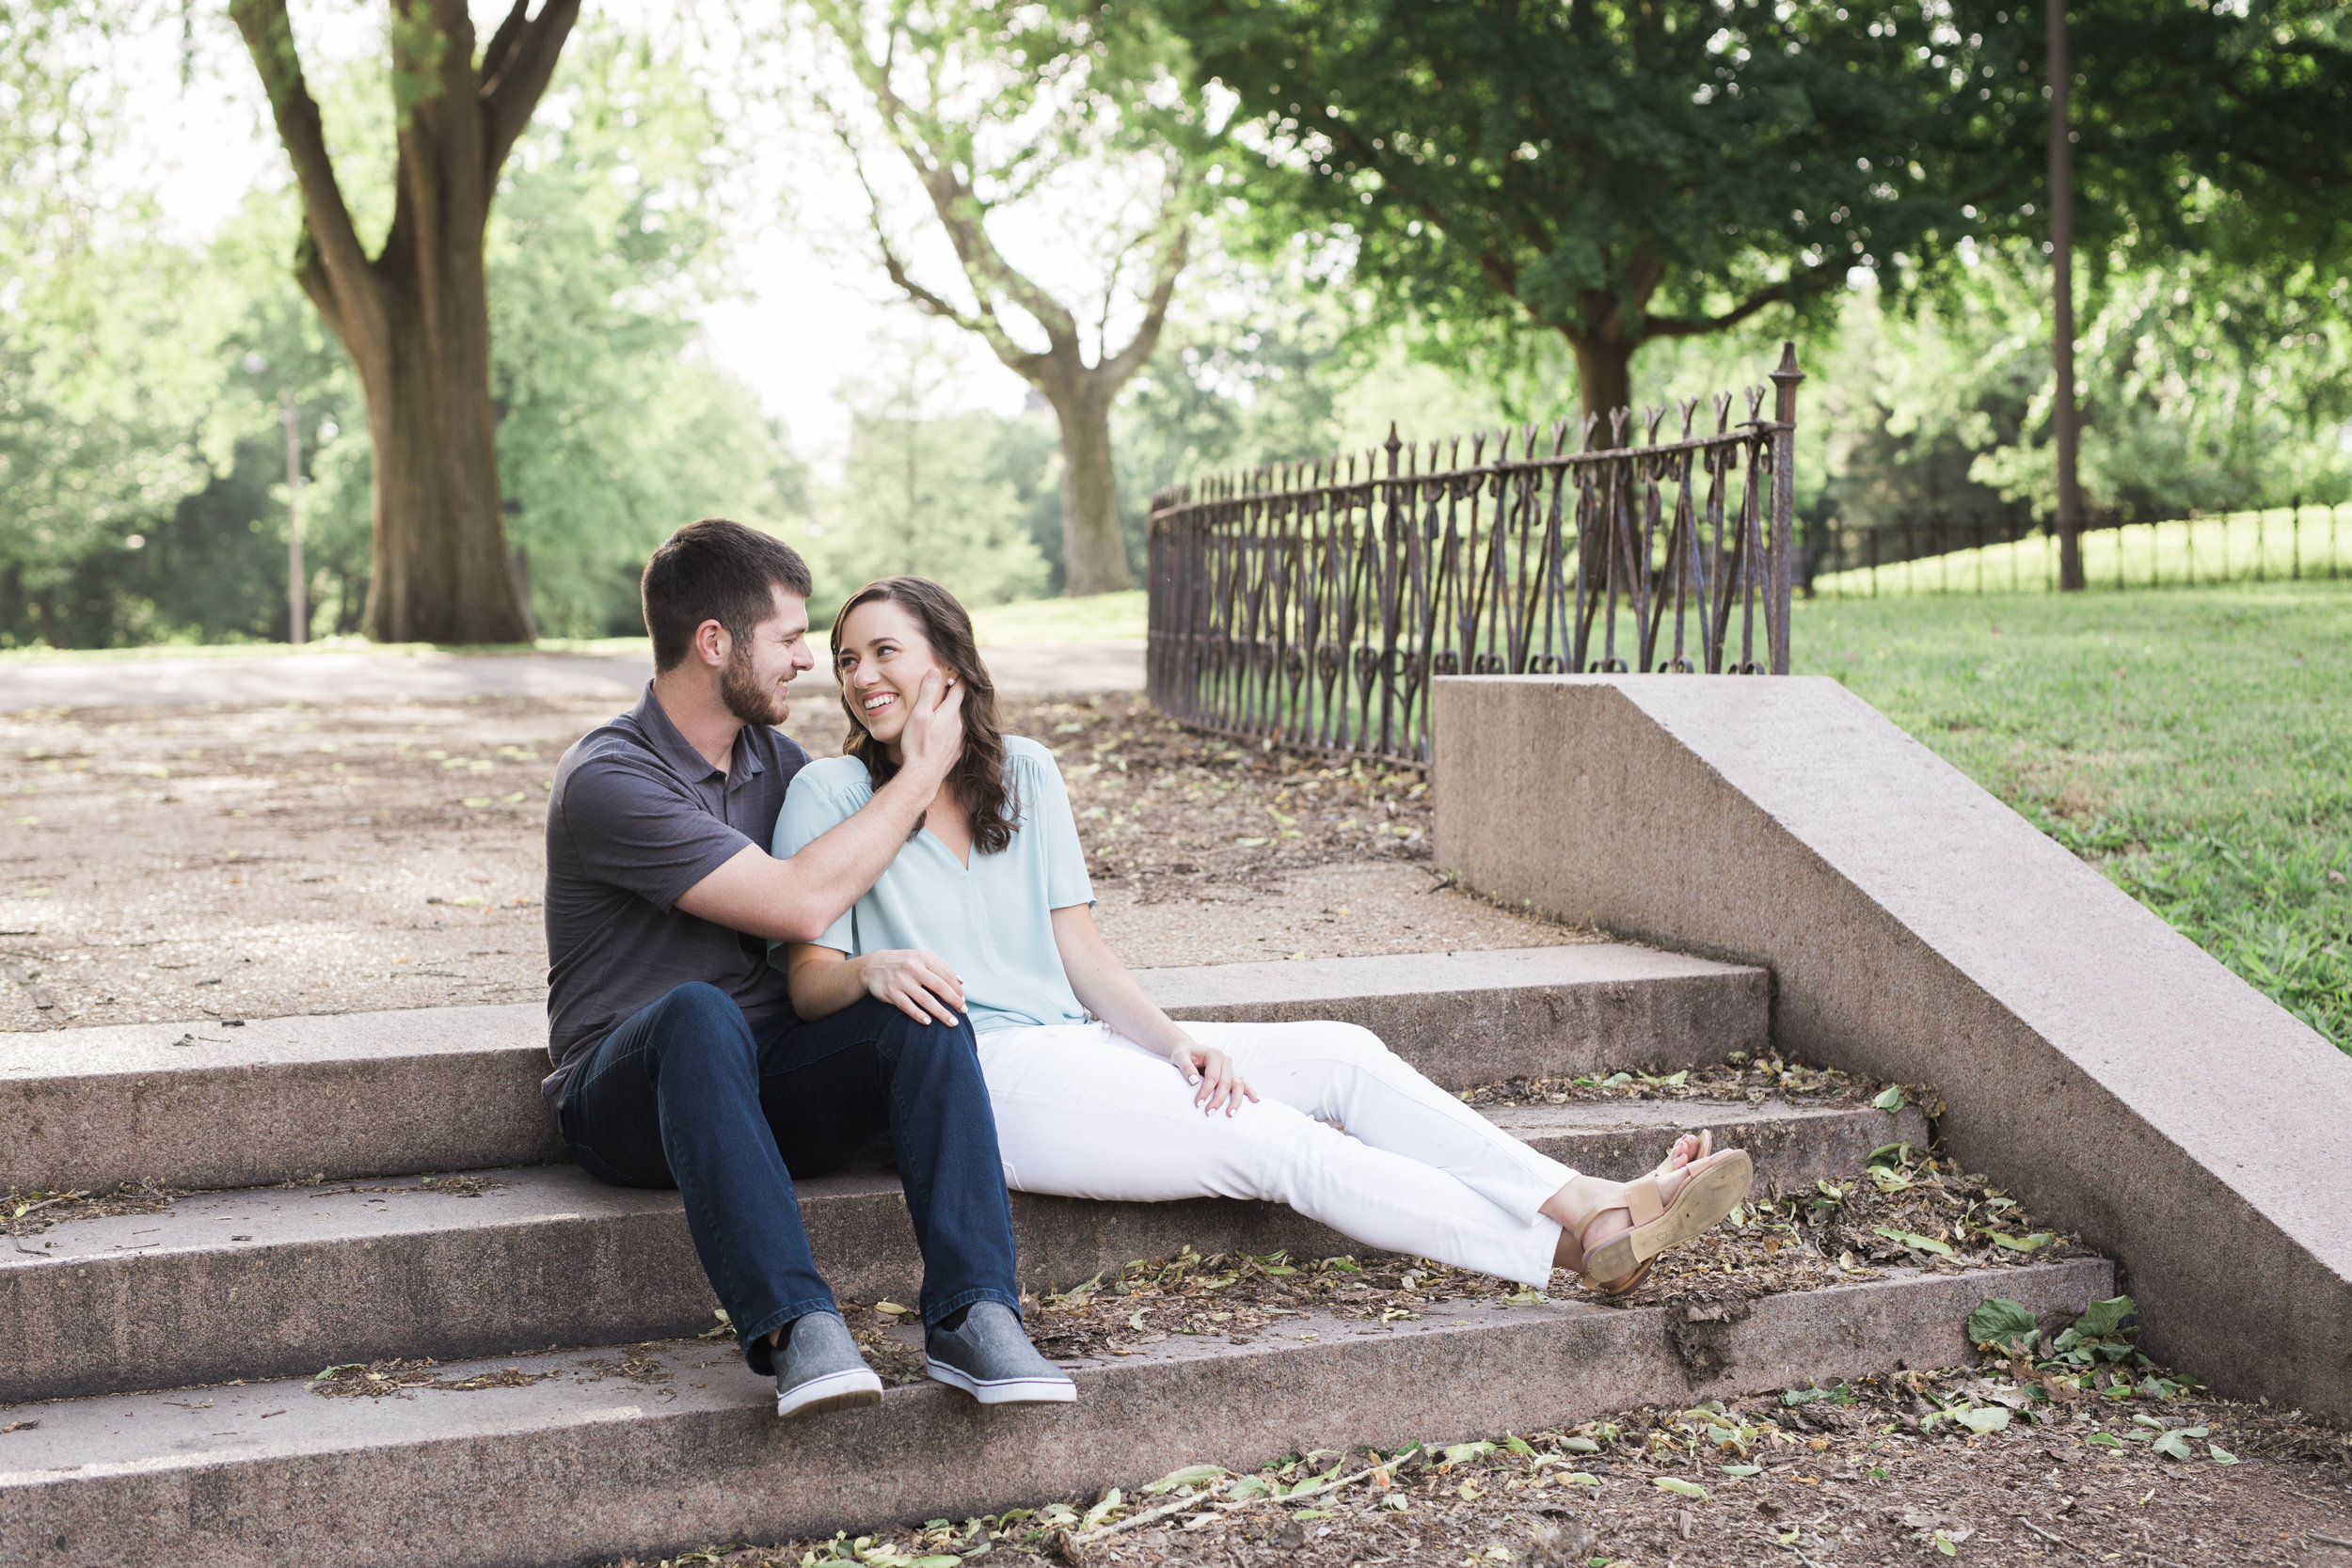 shotbychelsea_stl_engagement_photographer-4.jpg